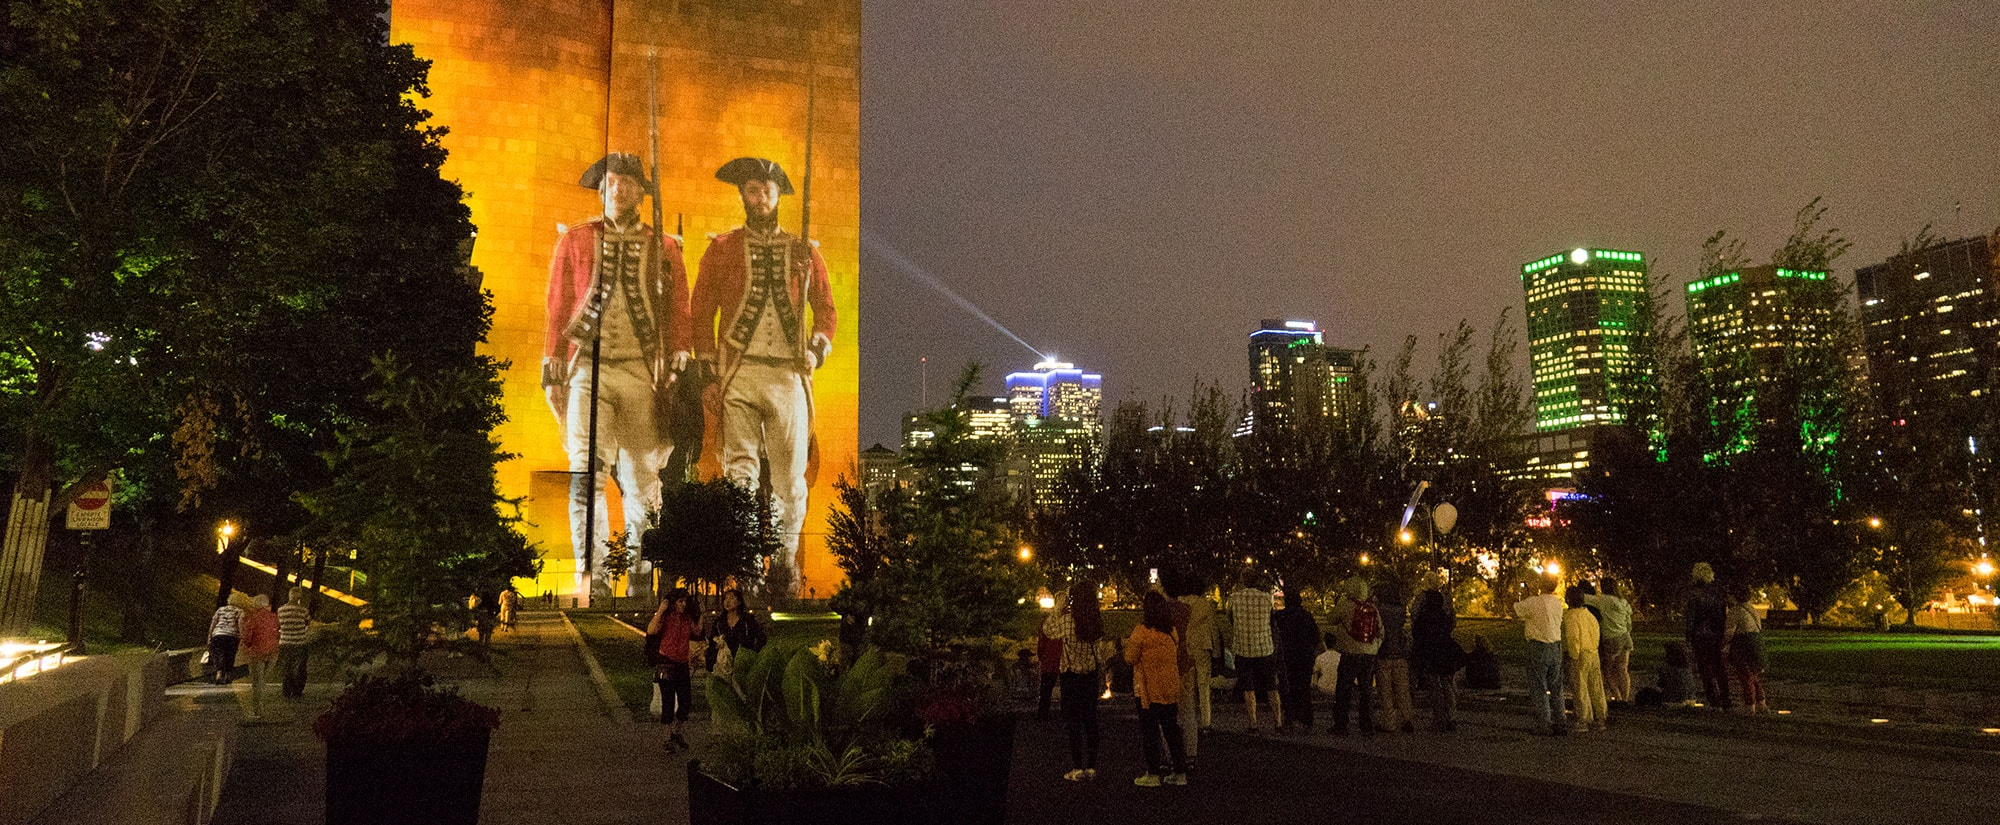 Montreal City Art - Samantha Brown Places To Love